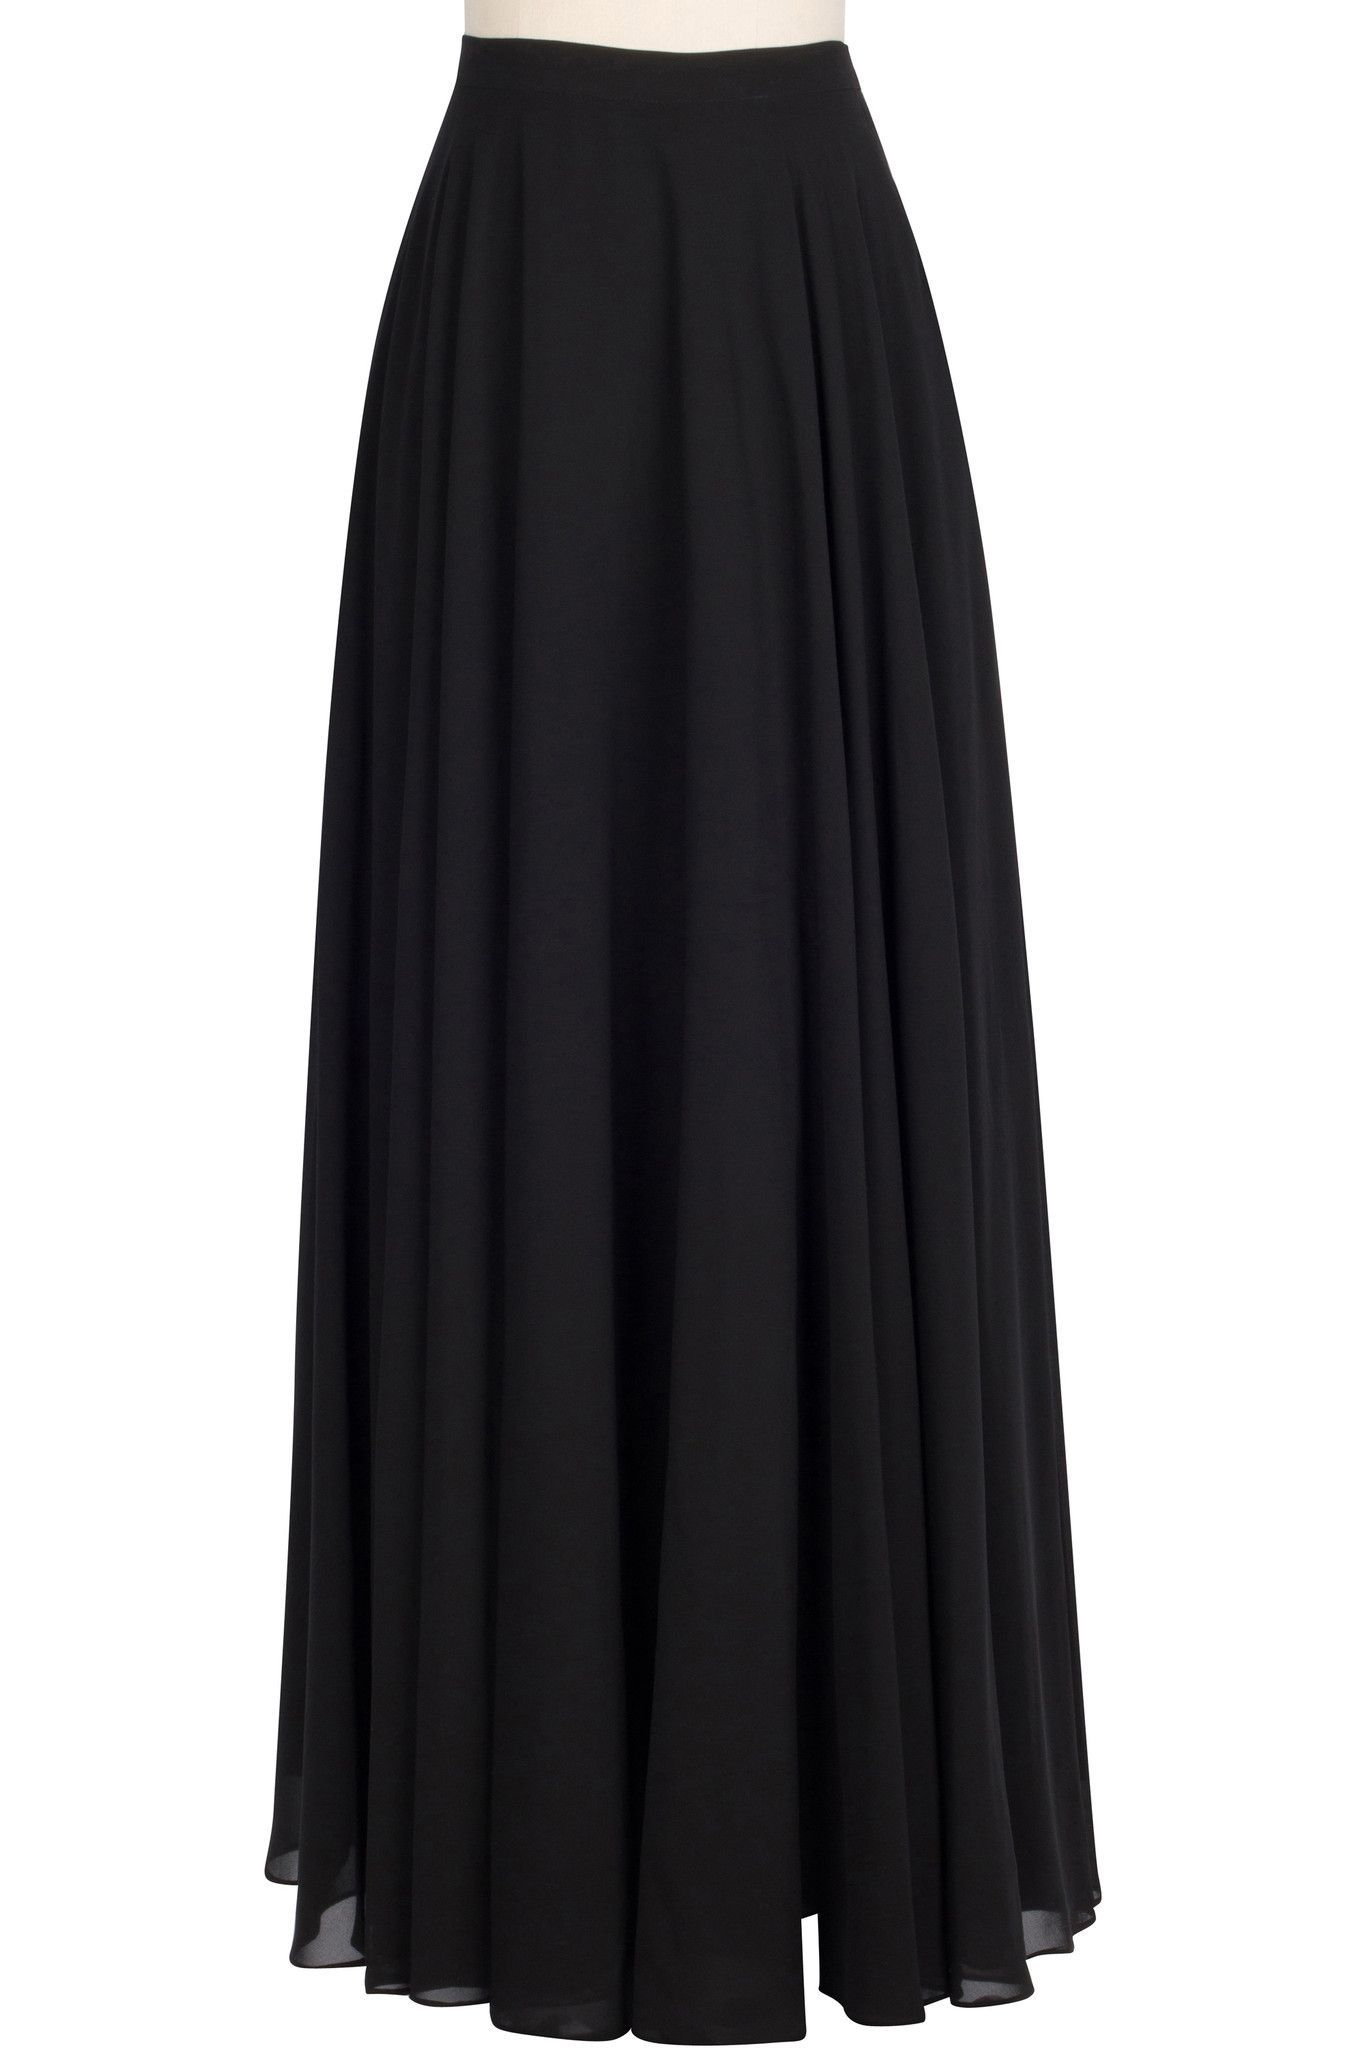 1365x2048 Feel Absolutely Beautiful In The Chiffon Circle Skirt! Its Fluid